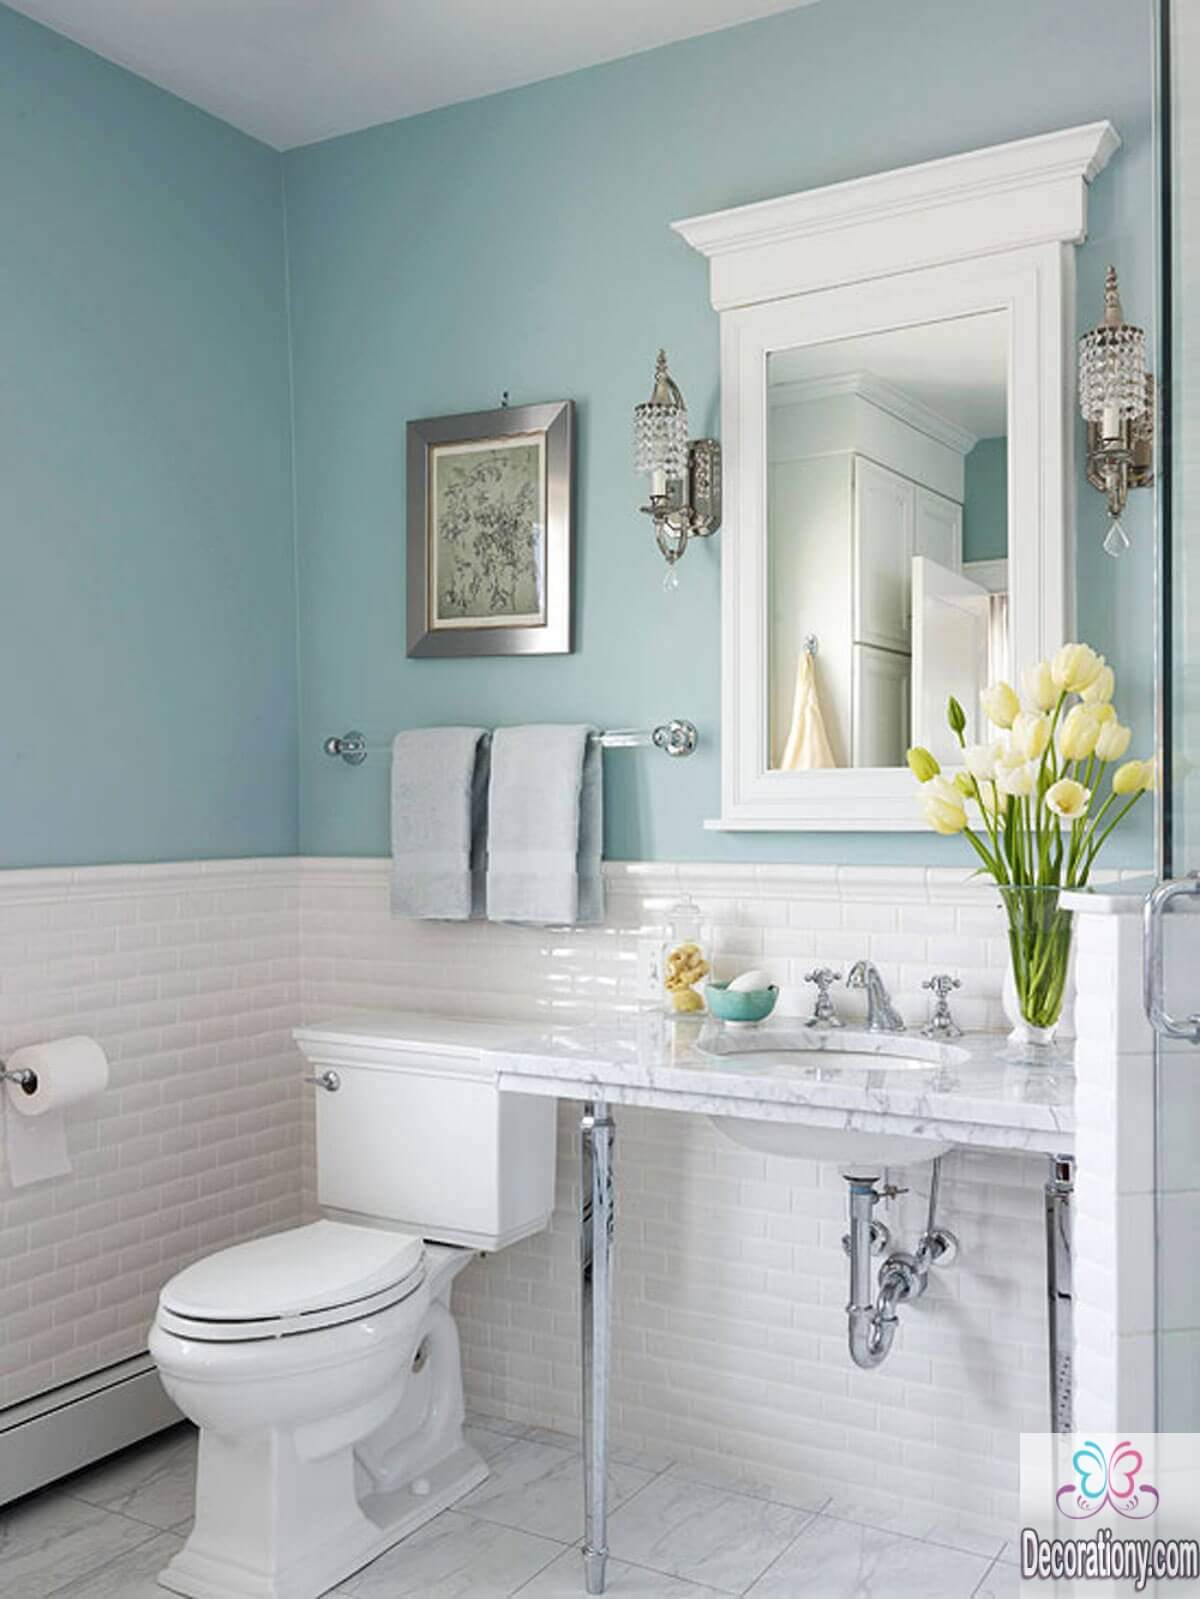 10 affordable colors for small bathrooms decoration y On bathroom colors for small bathroom